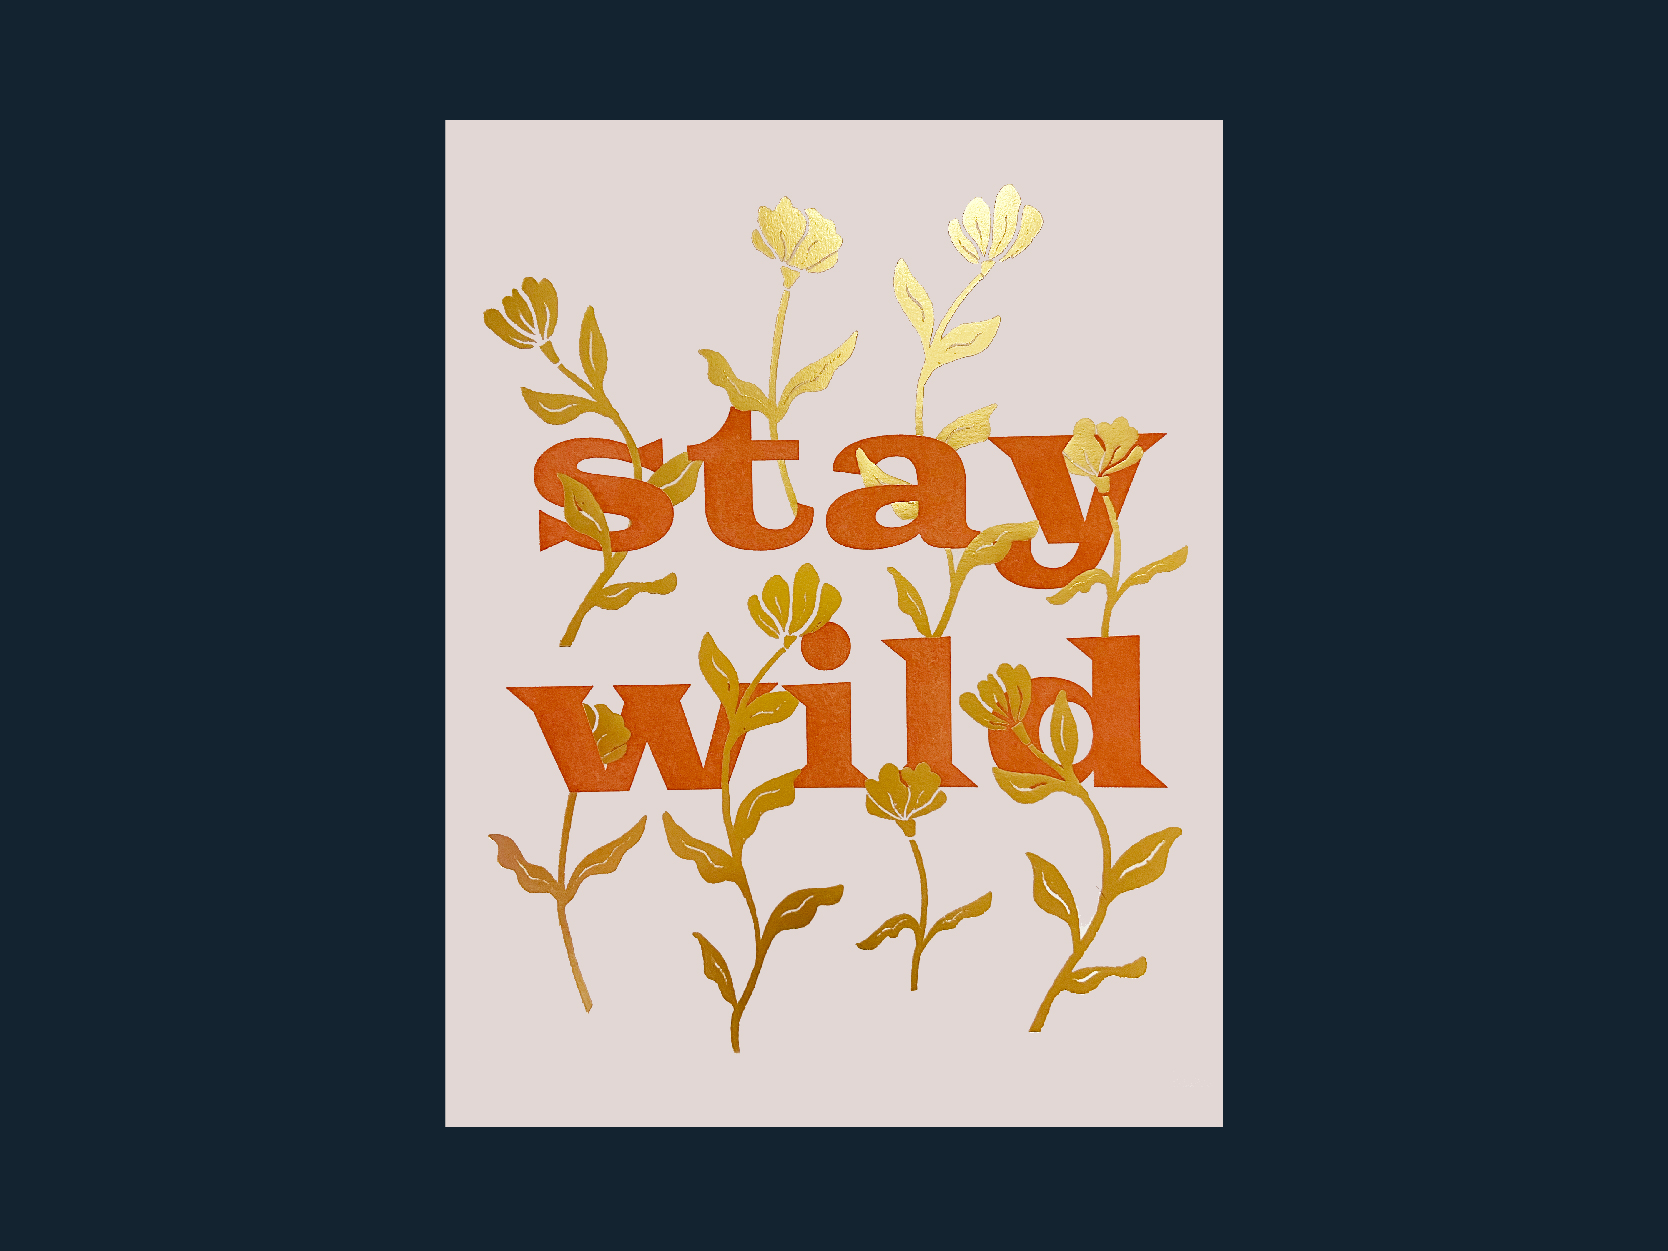 """Stay Wild"" 8x10 letterpress poster with gold foil flowers made with Neenah cotton paper in blush."